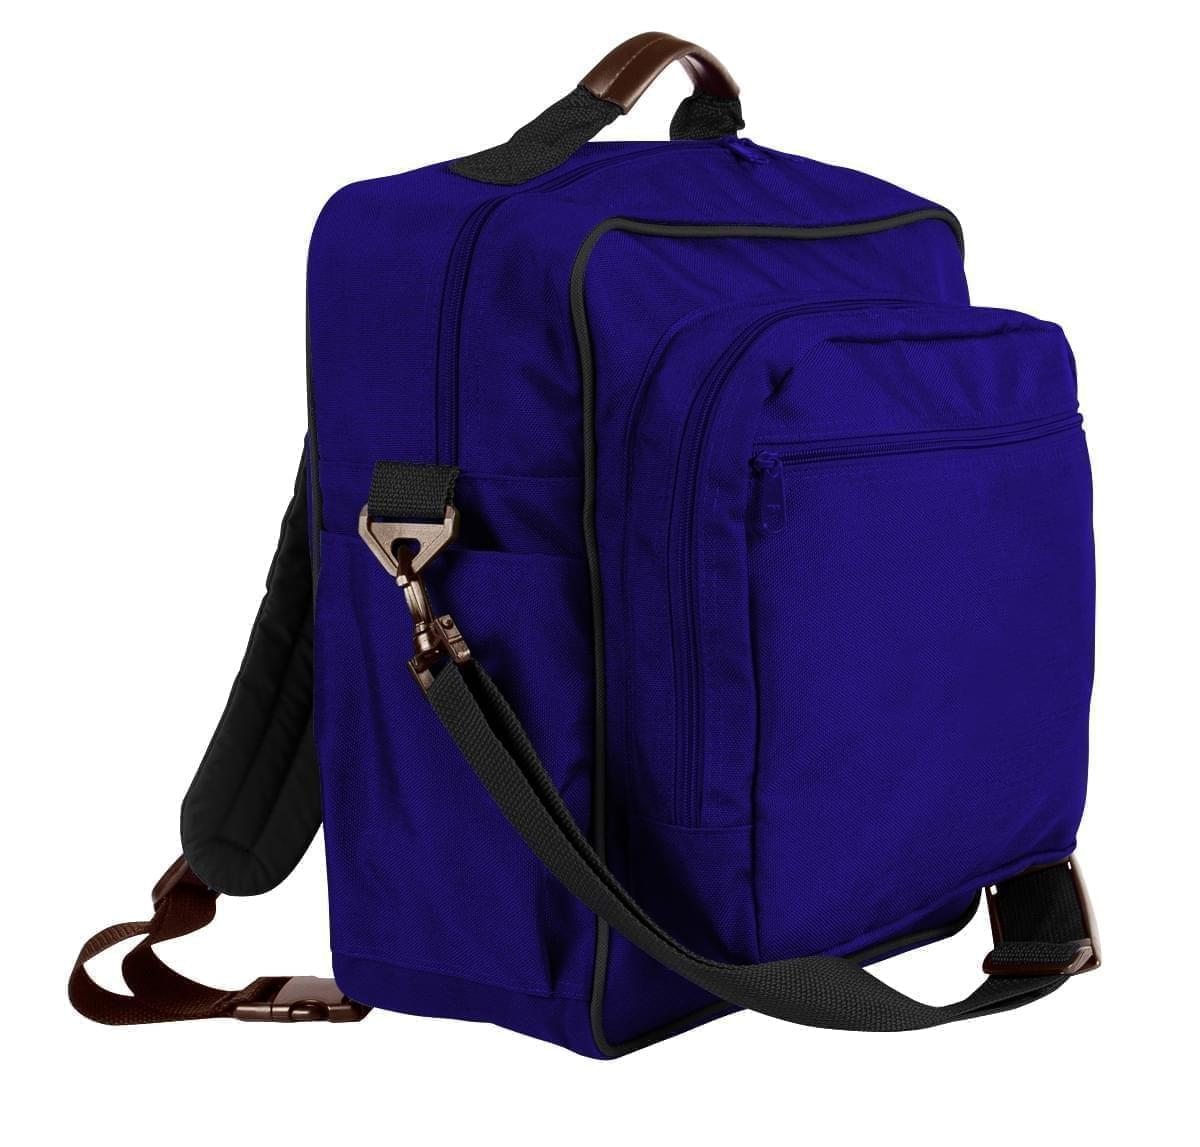 USA Made Poly Daypack Rucksacks, Purple-Black, 1070-AYR